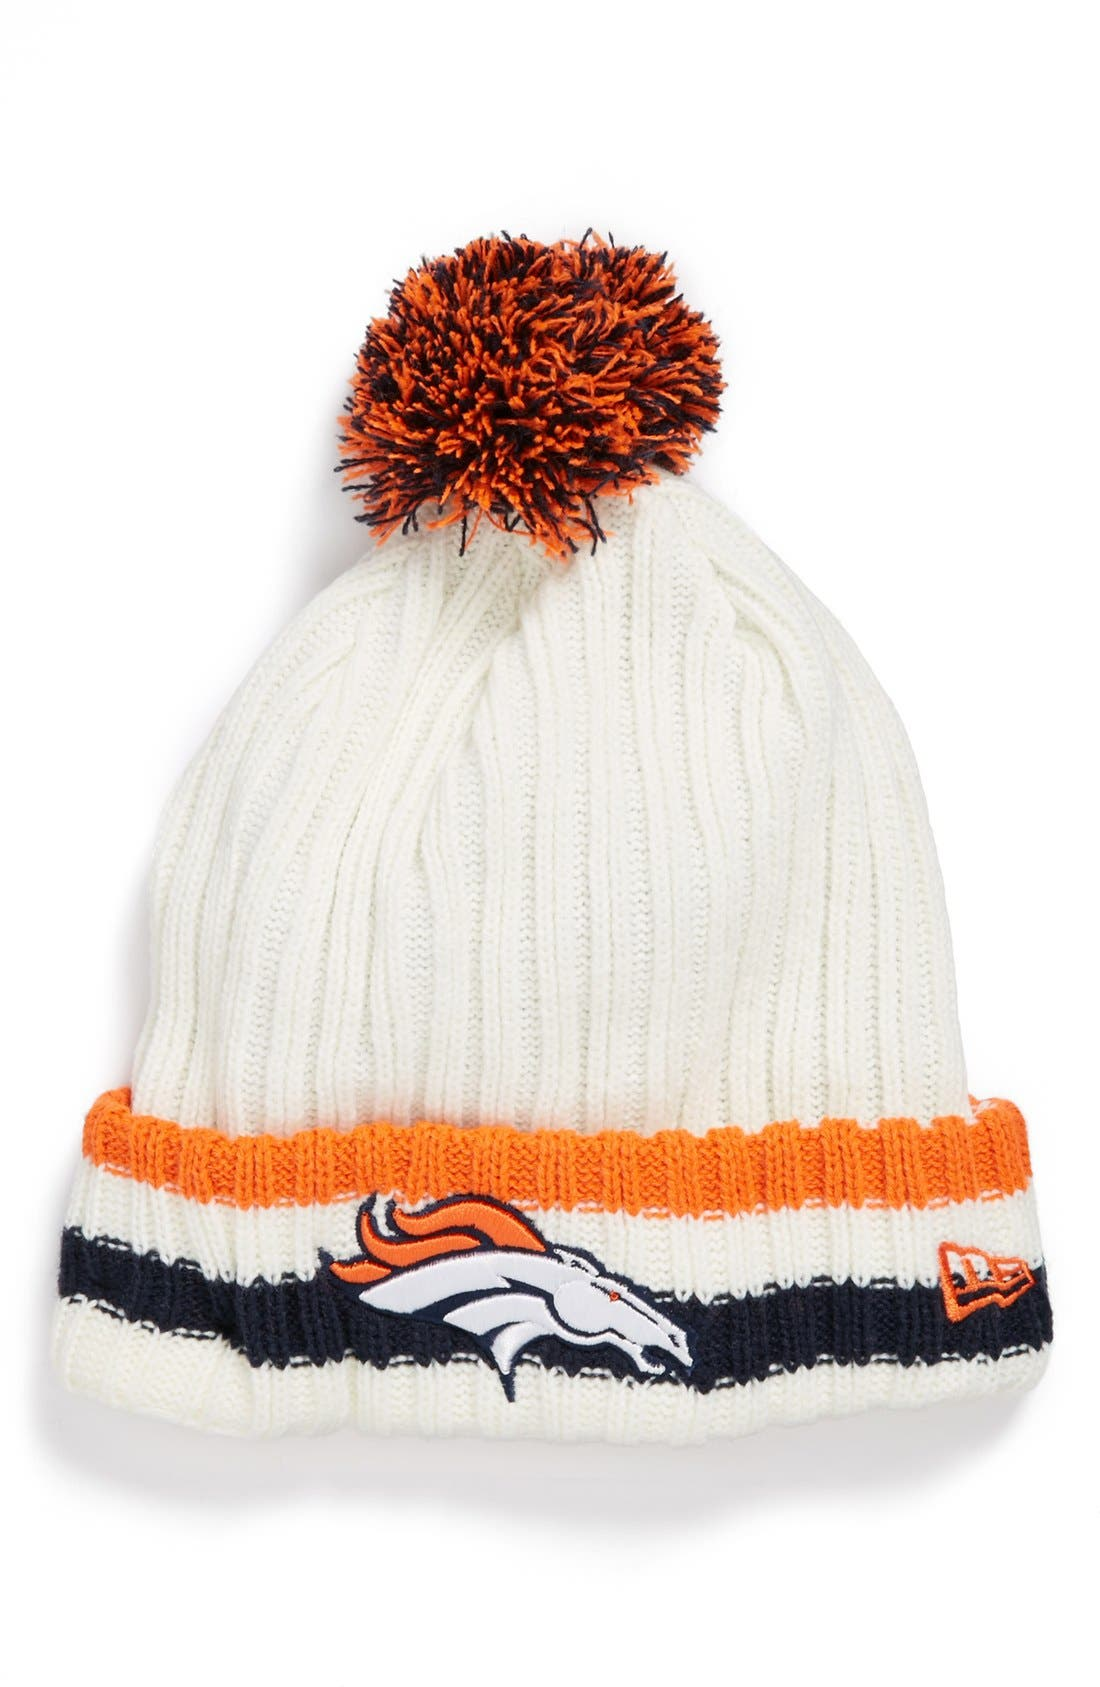 Alternate Image 1 Selected - New Era Cap 'Yesteryear - Denver Broncos' Knit Cap